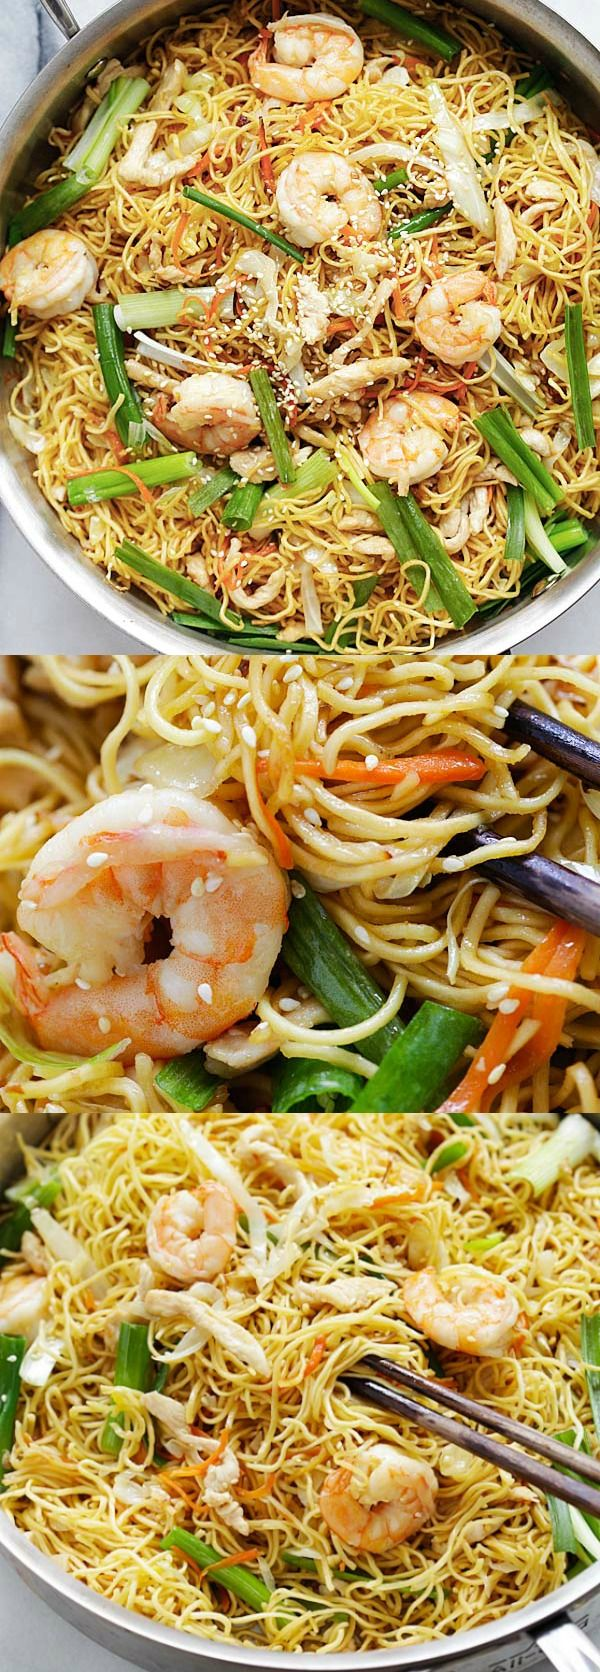 Chow Mein €� Quick And Healthy Chinese Fried Noodles Chow Mein Recipe That  Anyone Can Make Healthy Chinesechinese Foodchinese